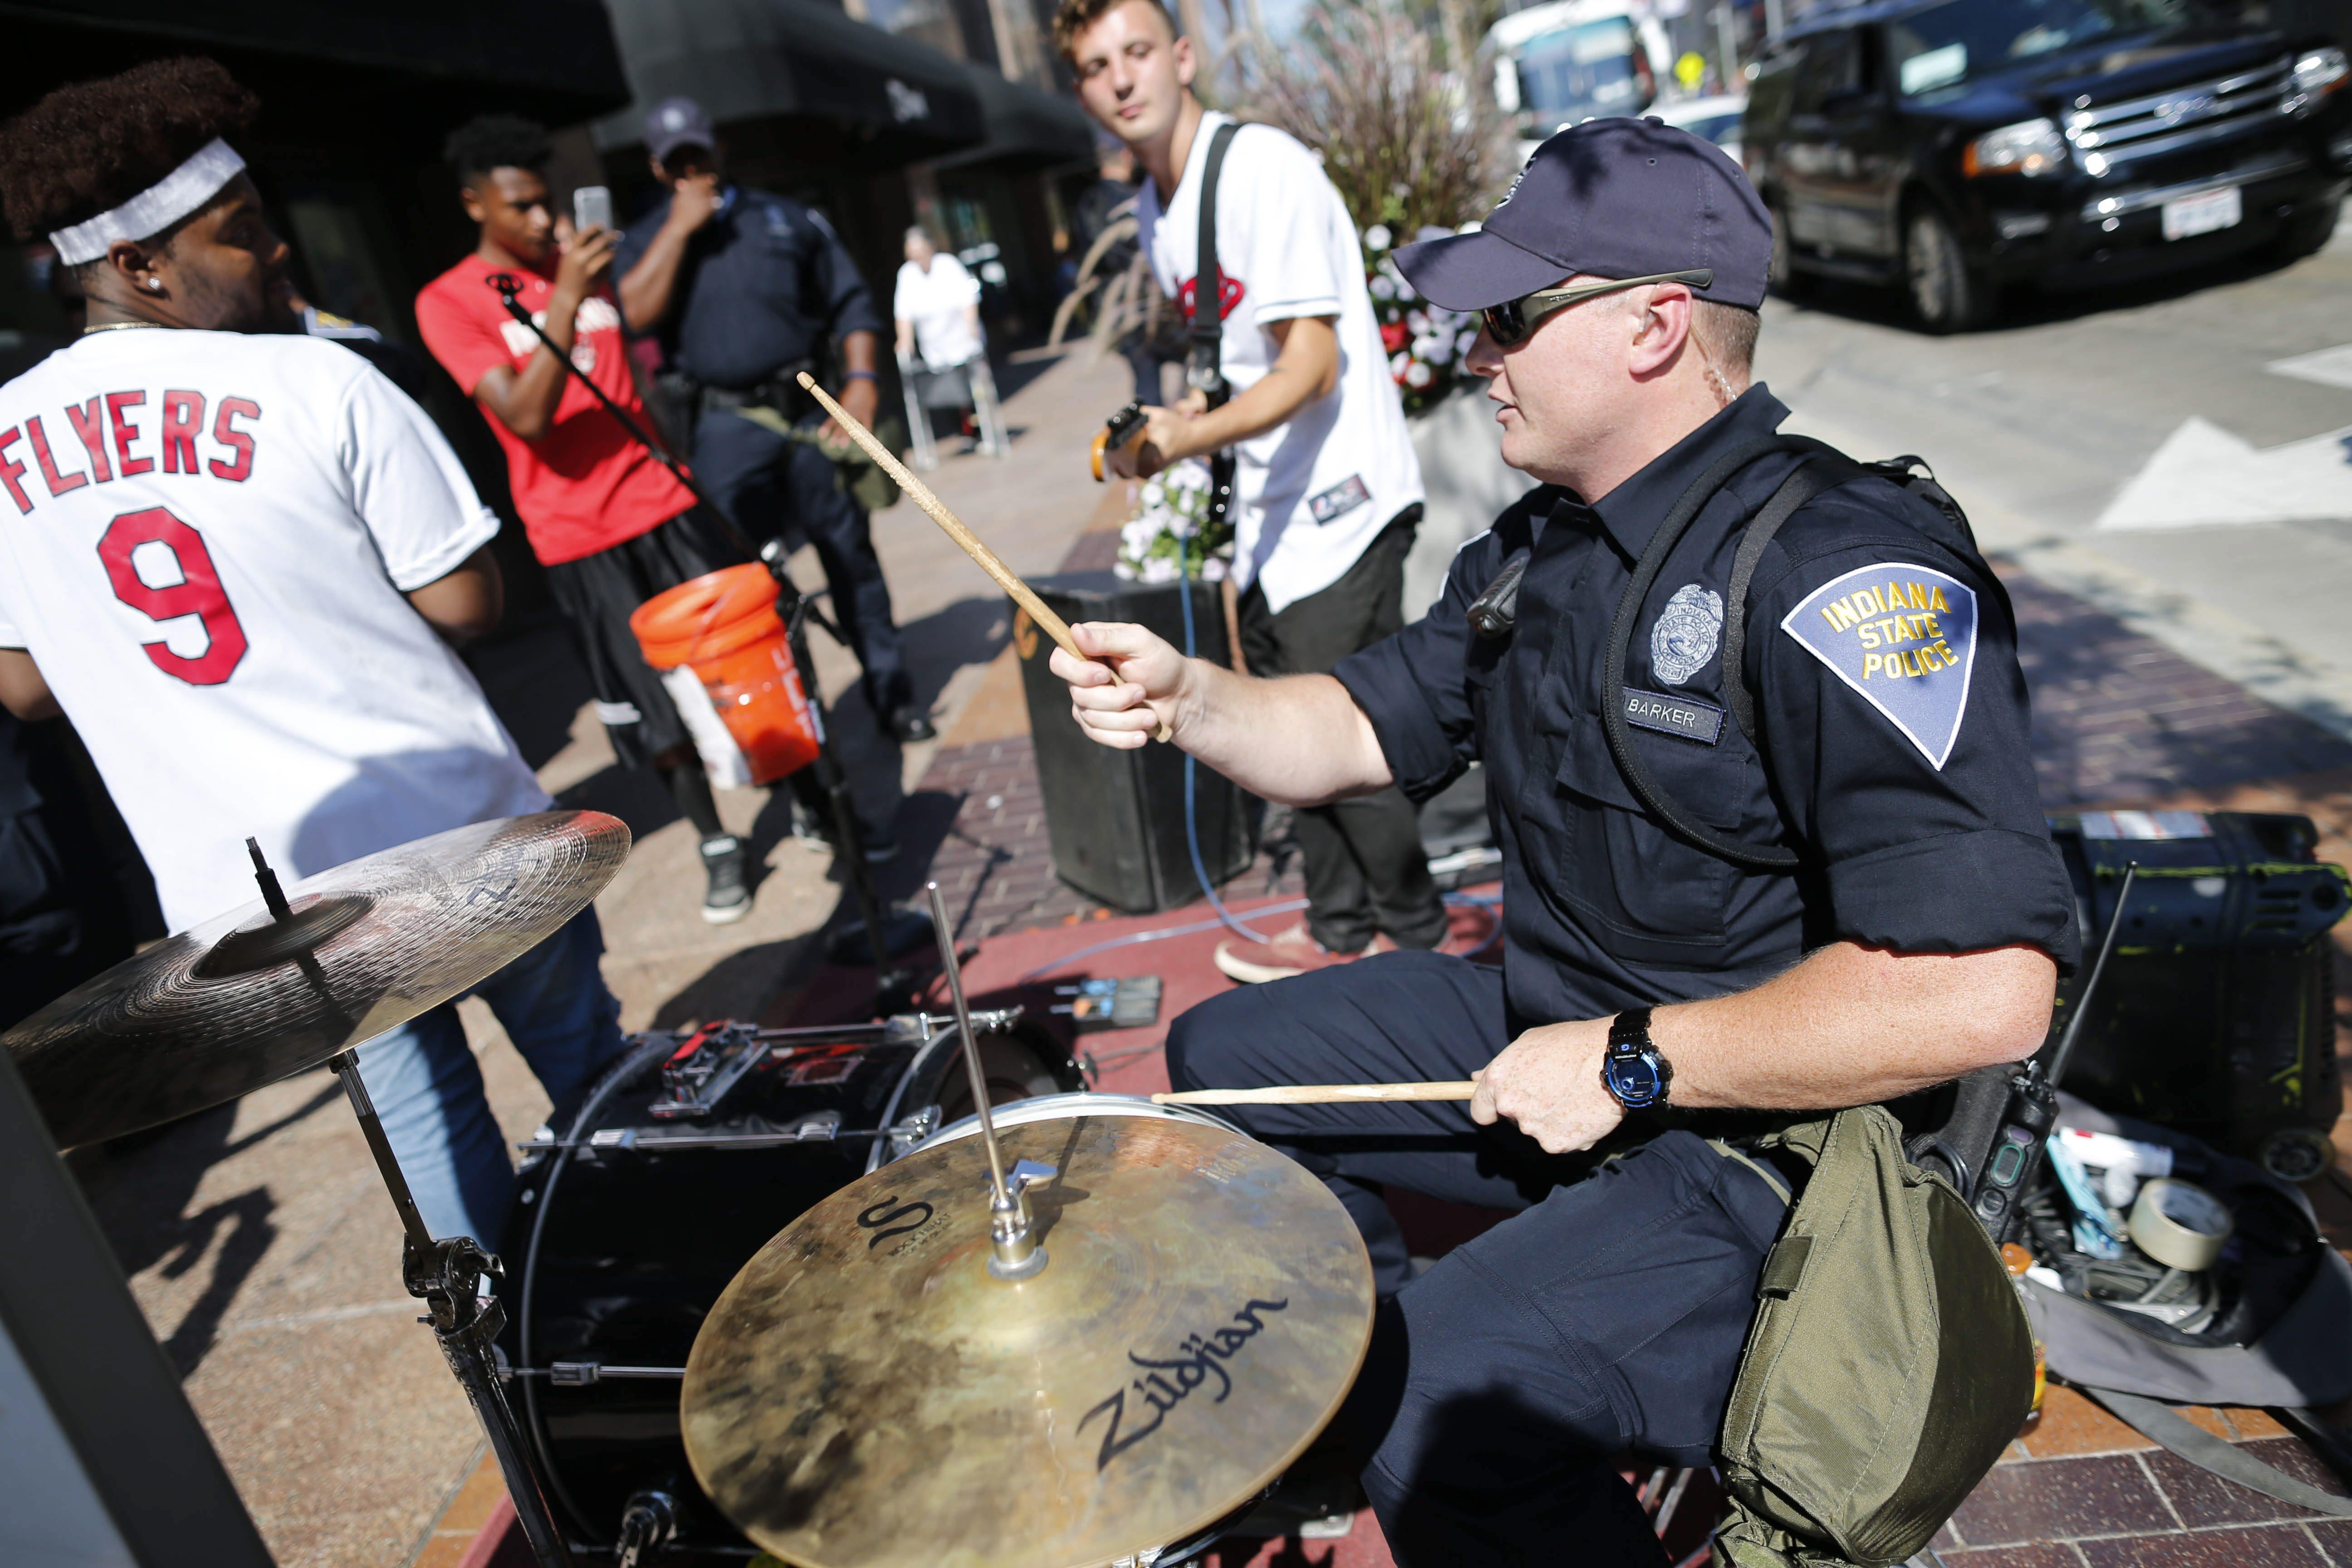 An Indiana State Police officer sits in on drums with the band Talionis as they perform on Euclid Avenue outside the RNC in Cleveland, Wednesday, July 20, 2016. (Photo by Derek Gee)